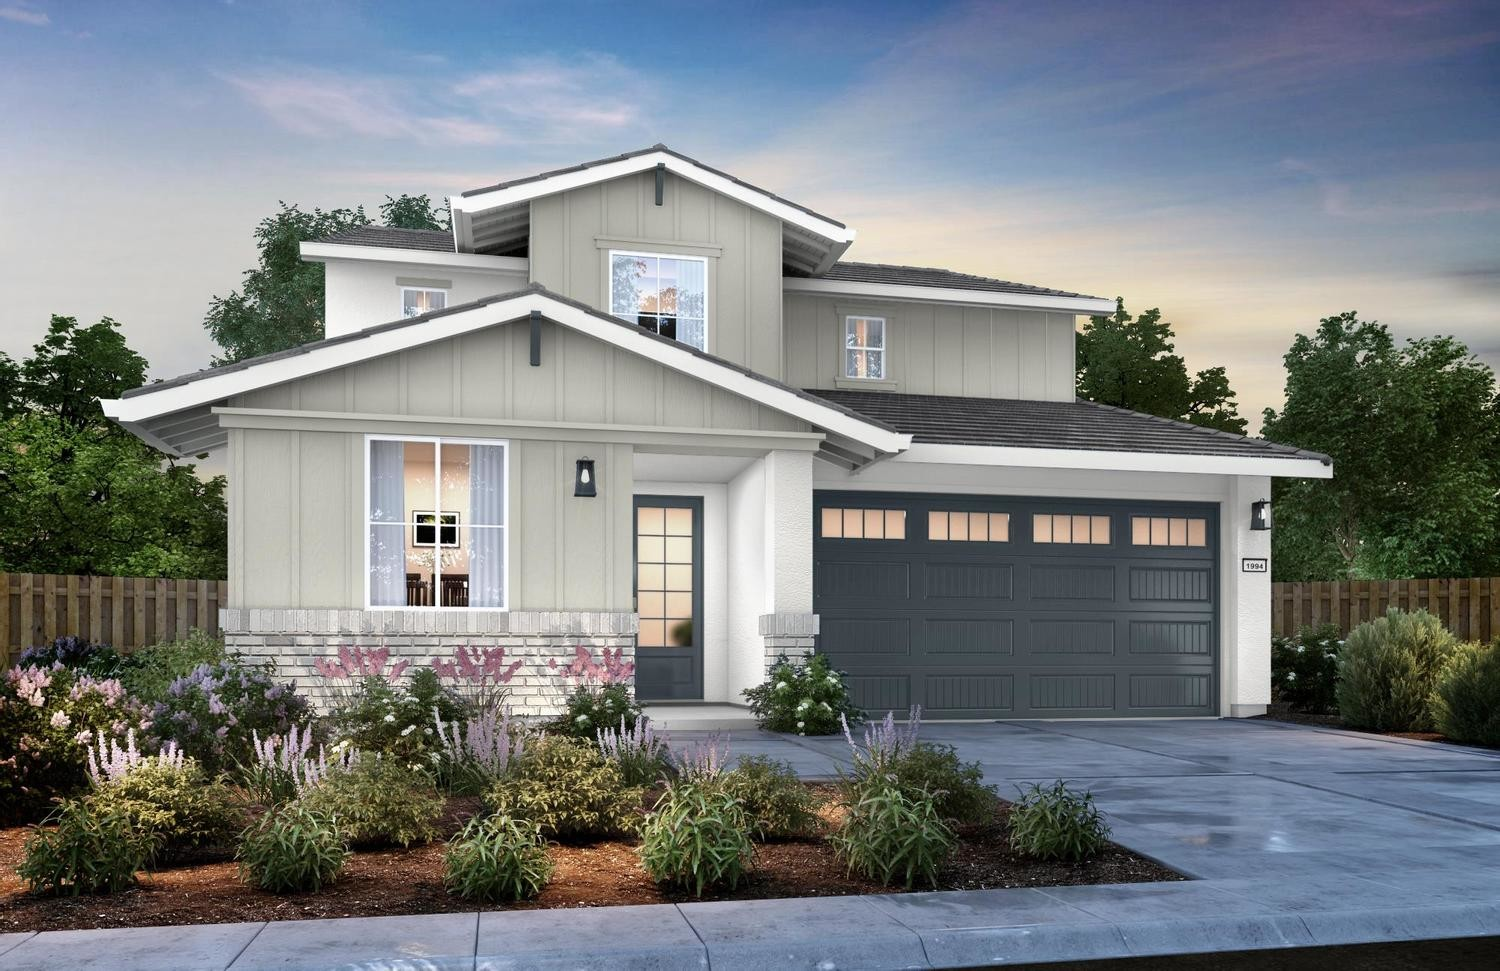 Move In Ready New Home In Elan at Premier Montelena Community